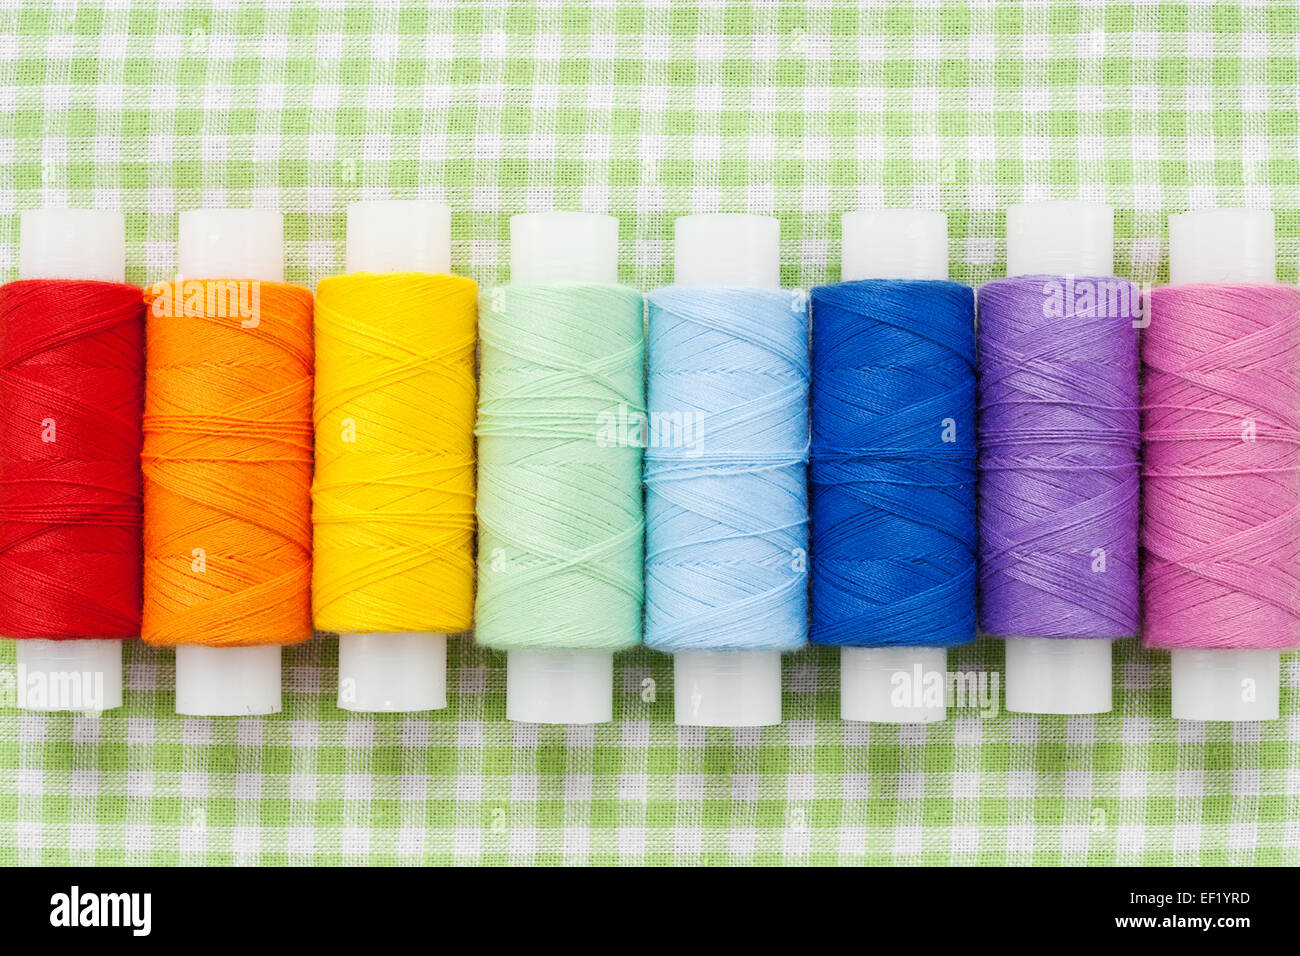 spools of colorful thread, skein collection, top view - Stock Image